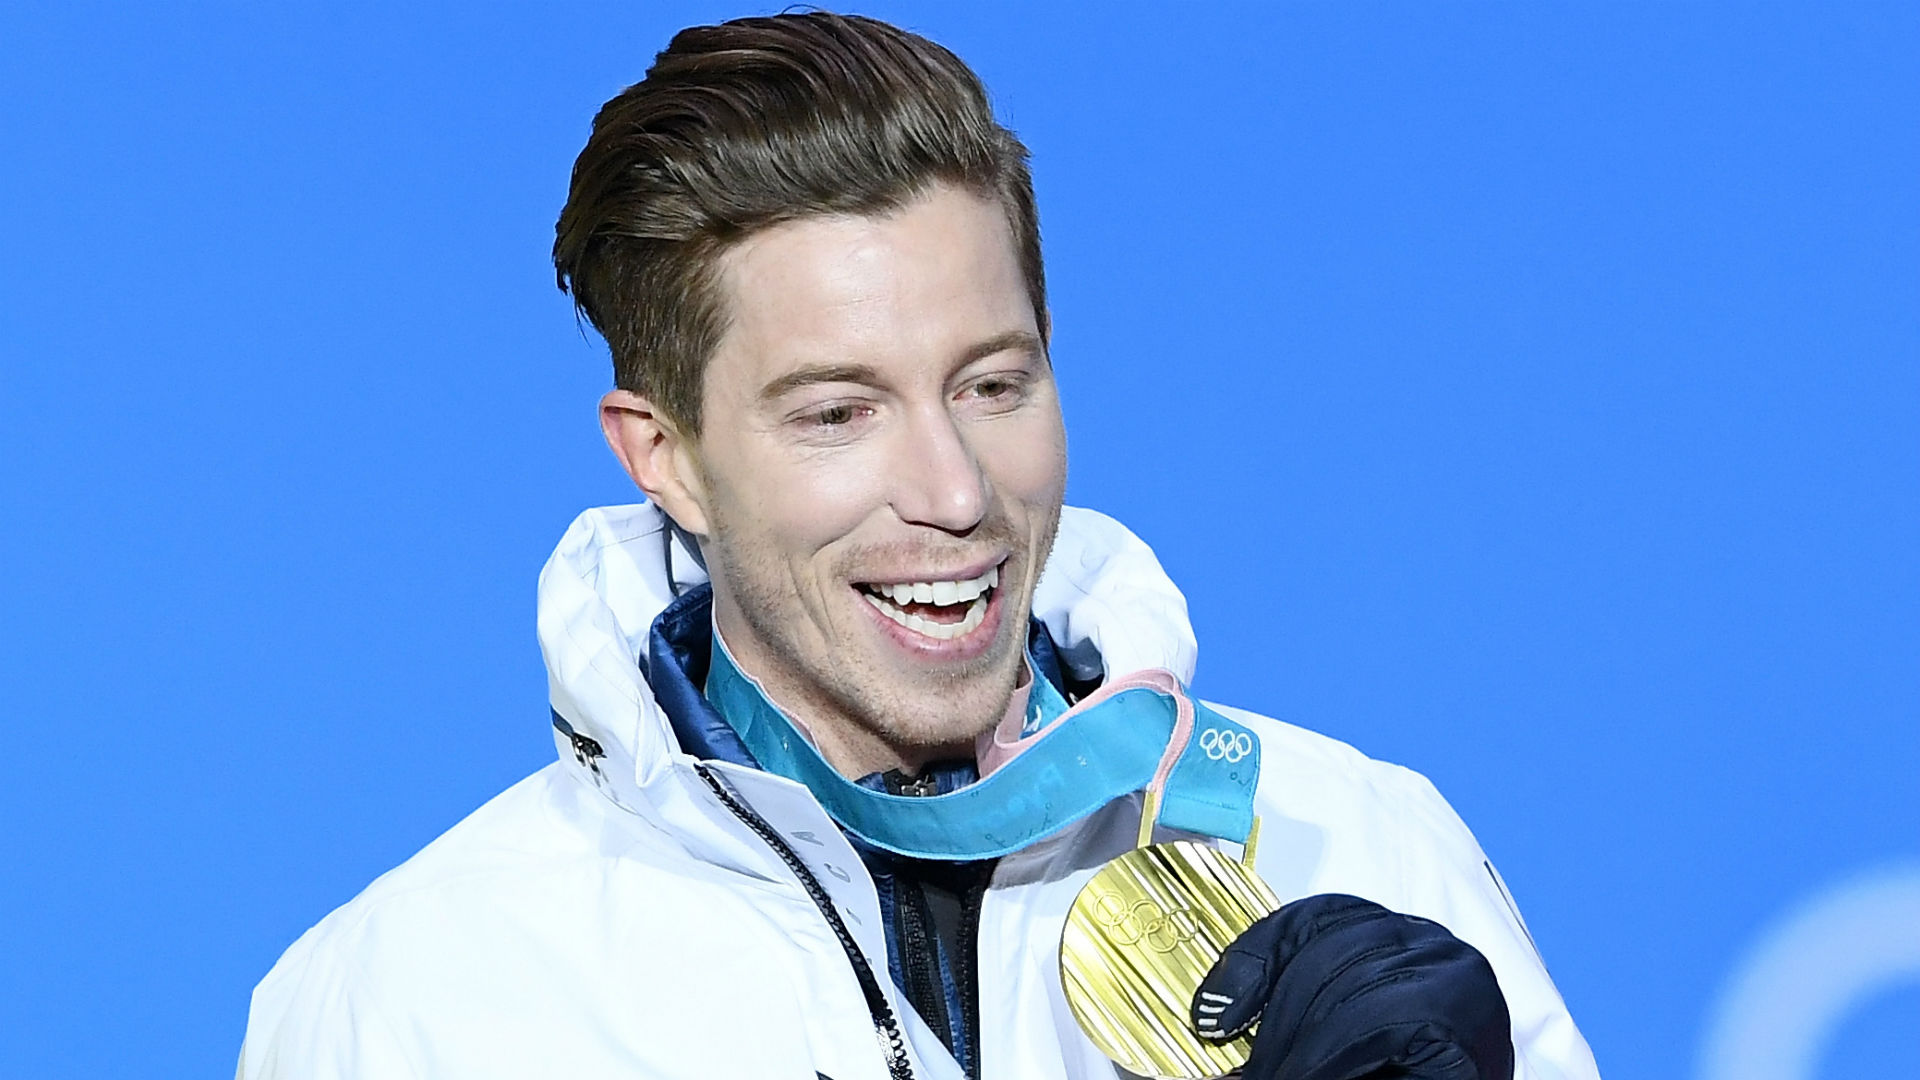 Shaun White apologizes for calling sex harassment claims 'gossip'